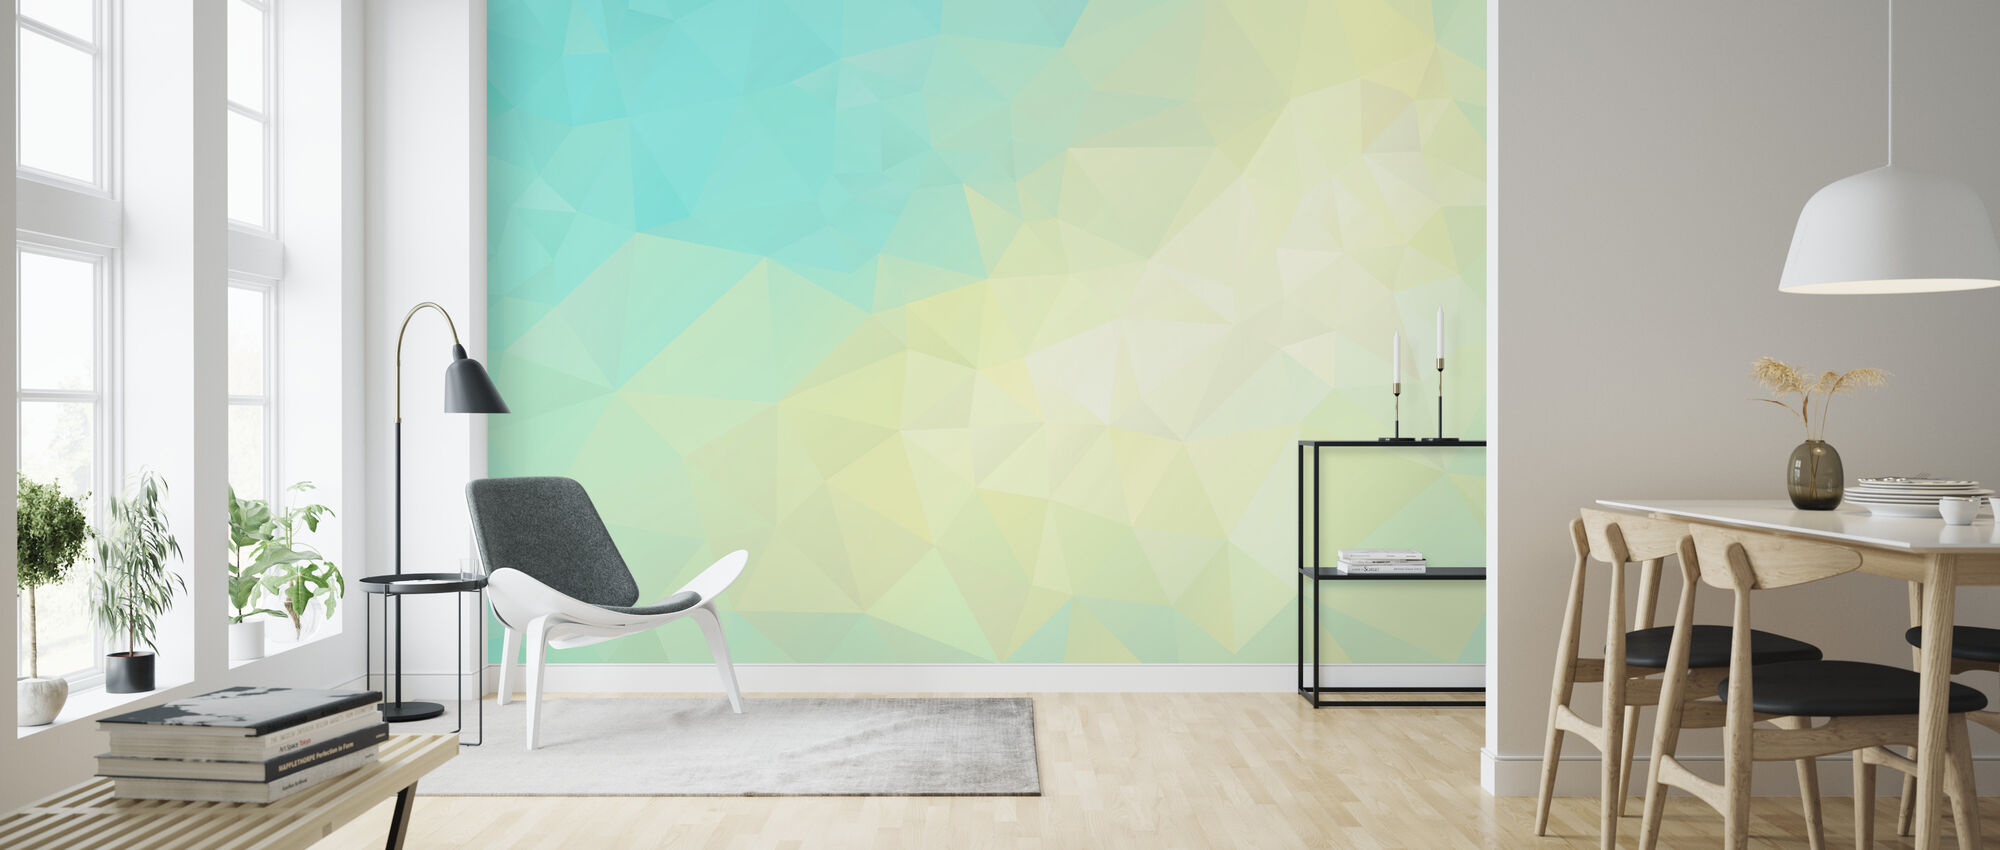 Geometric Sunshine - Wallpaper - Living Room